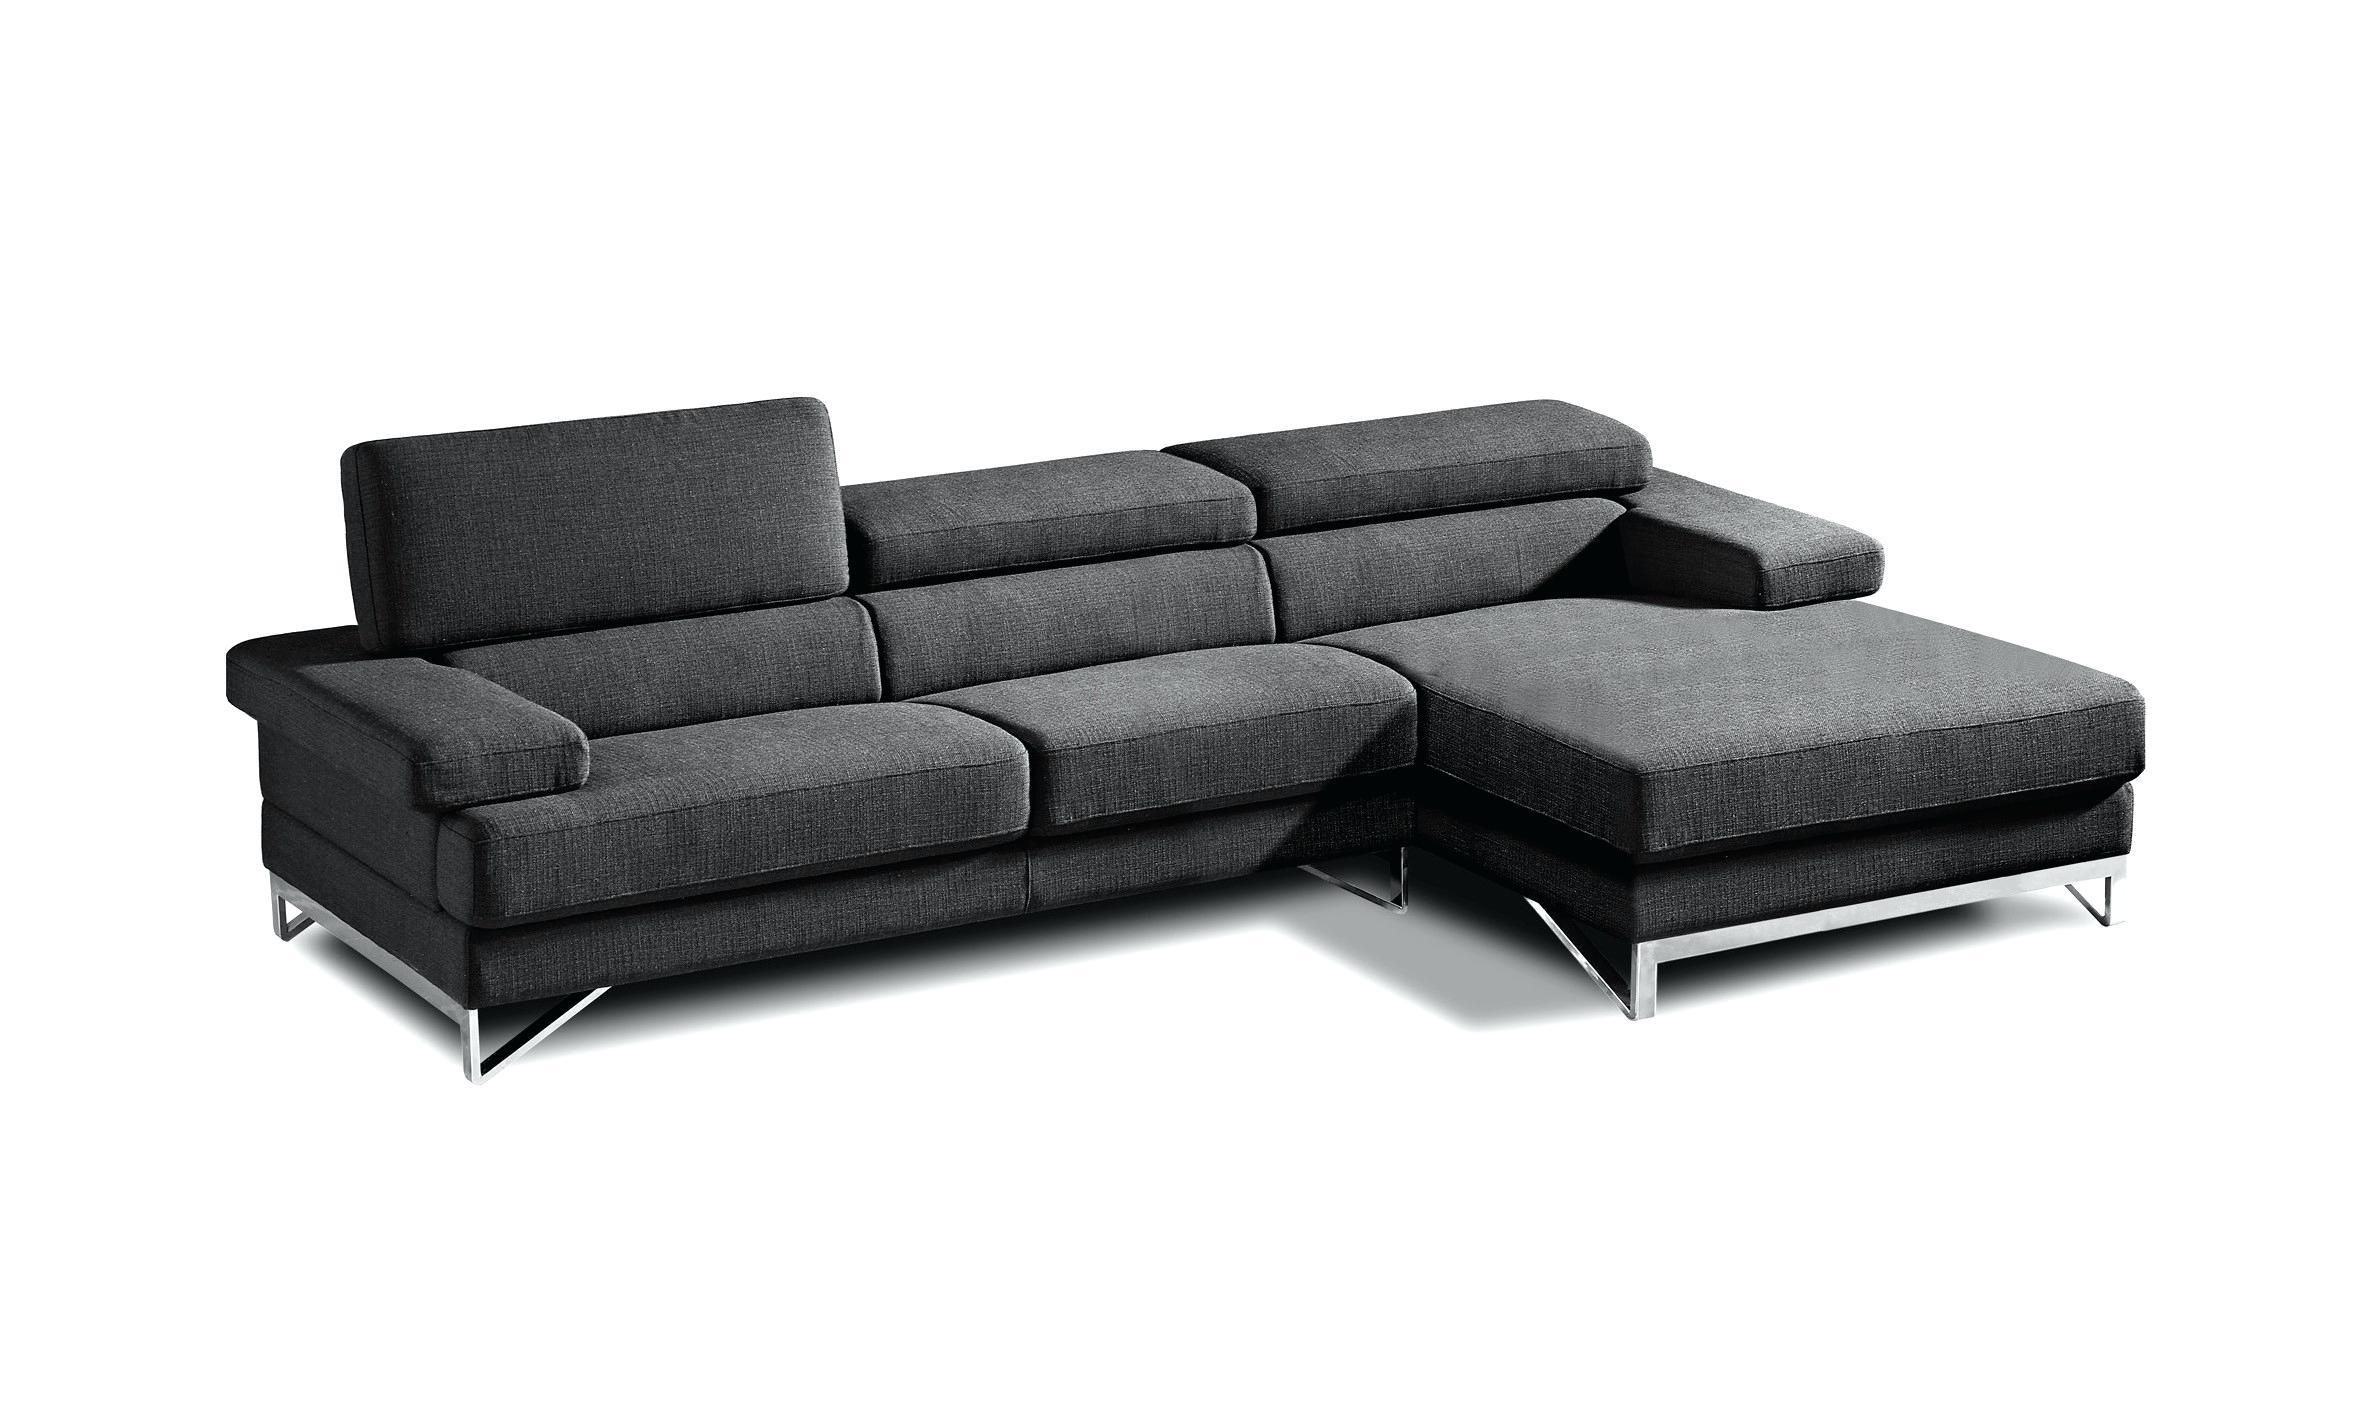 Couches Calgary Sofa Bed Edmonton Livingroom Wonderful Sofa Edmonton